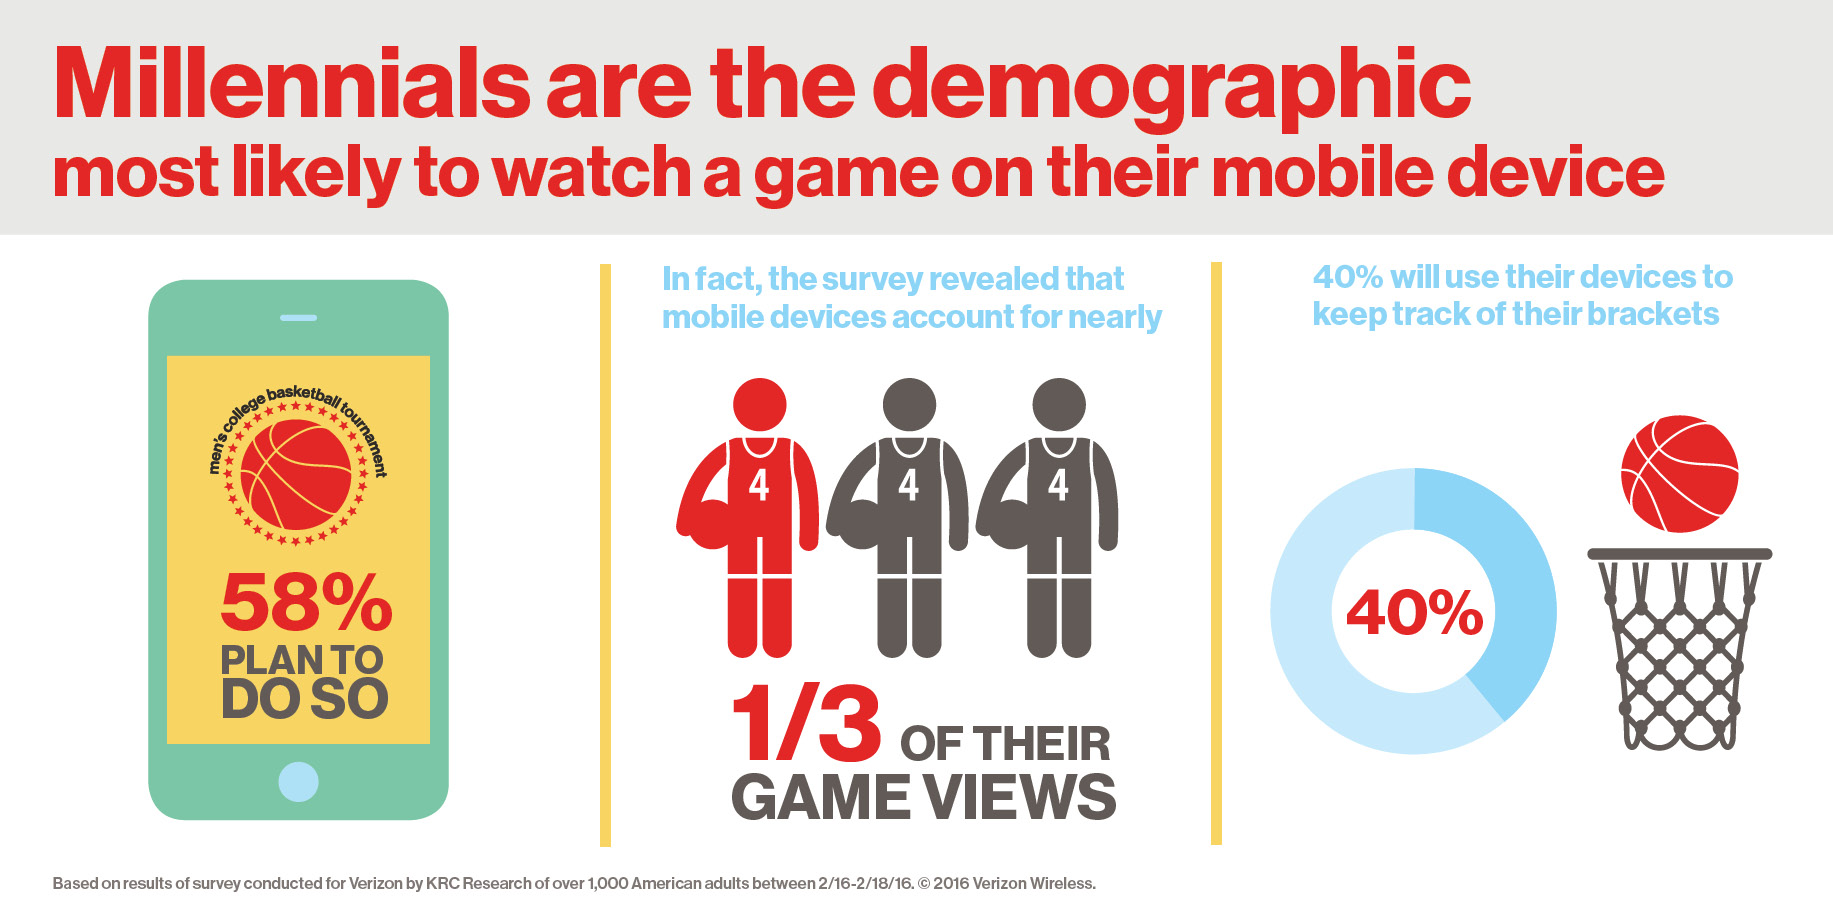 Millenials are the demographic most likely to watch a game on their mobile